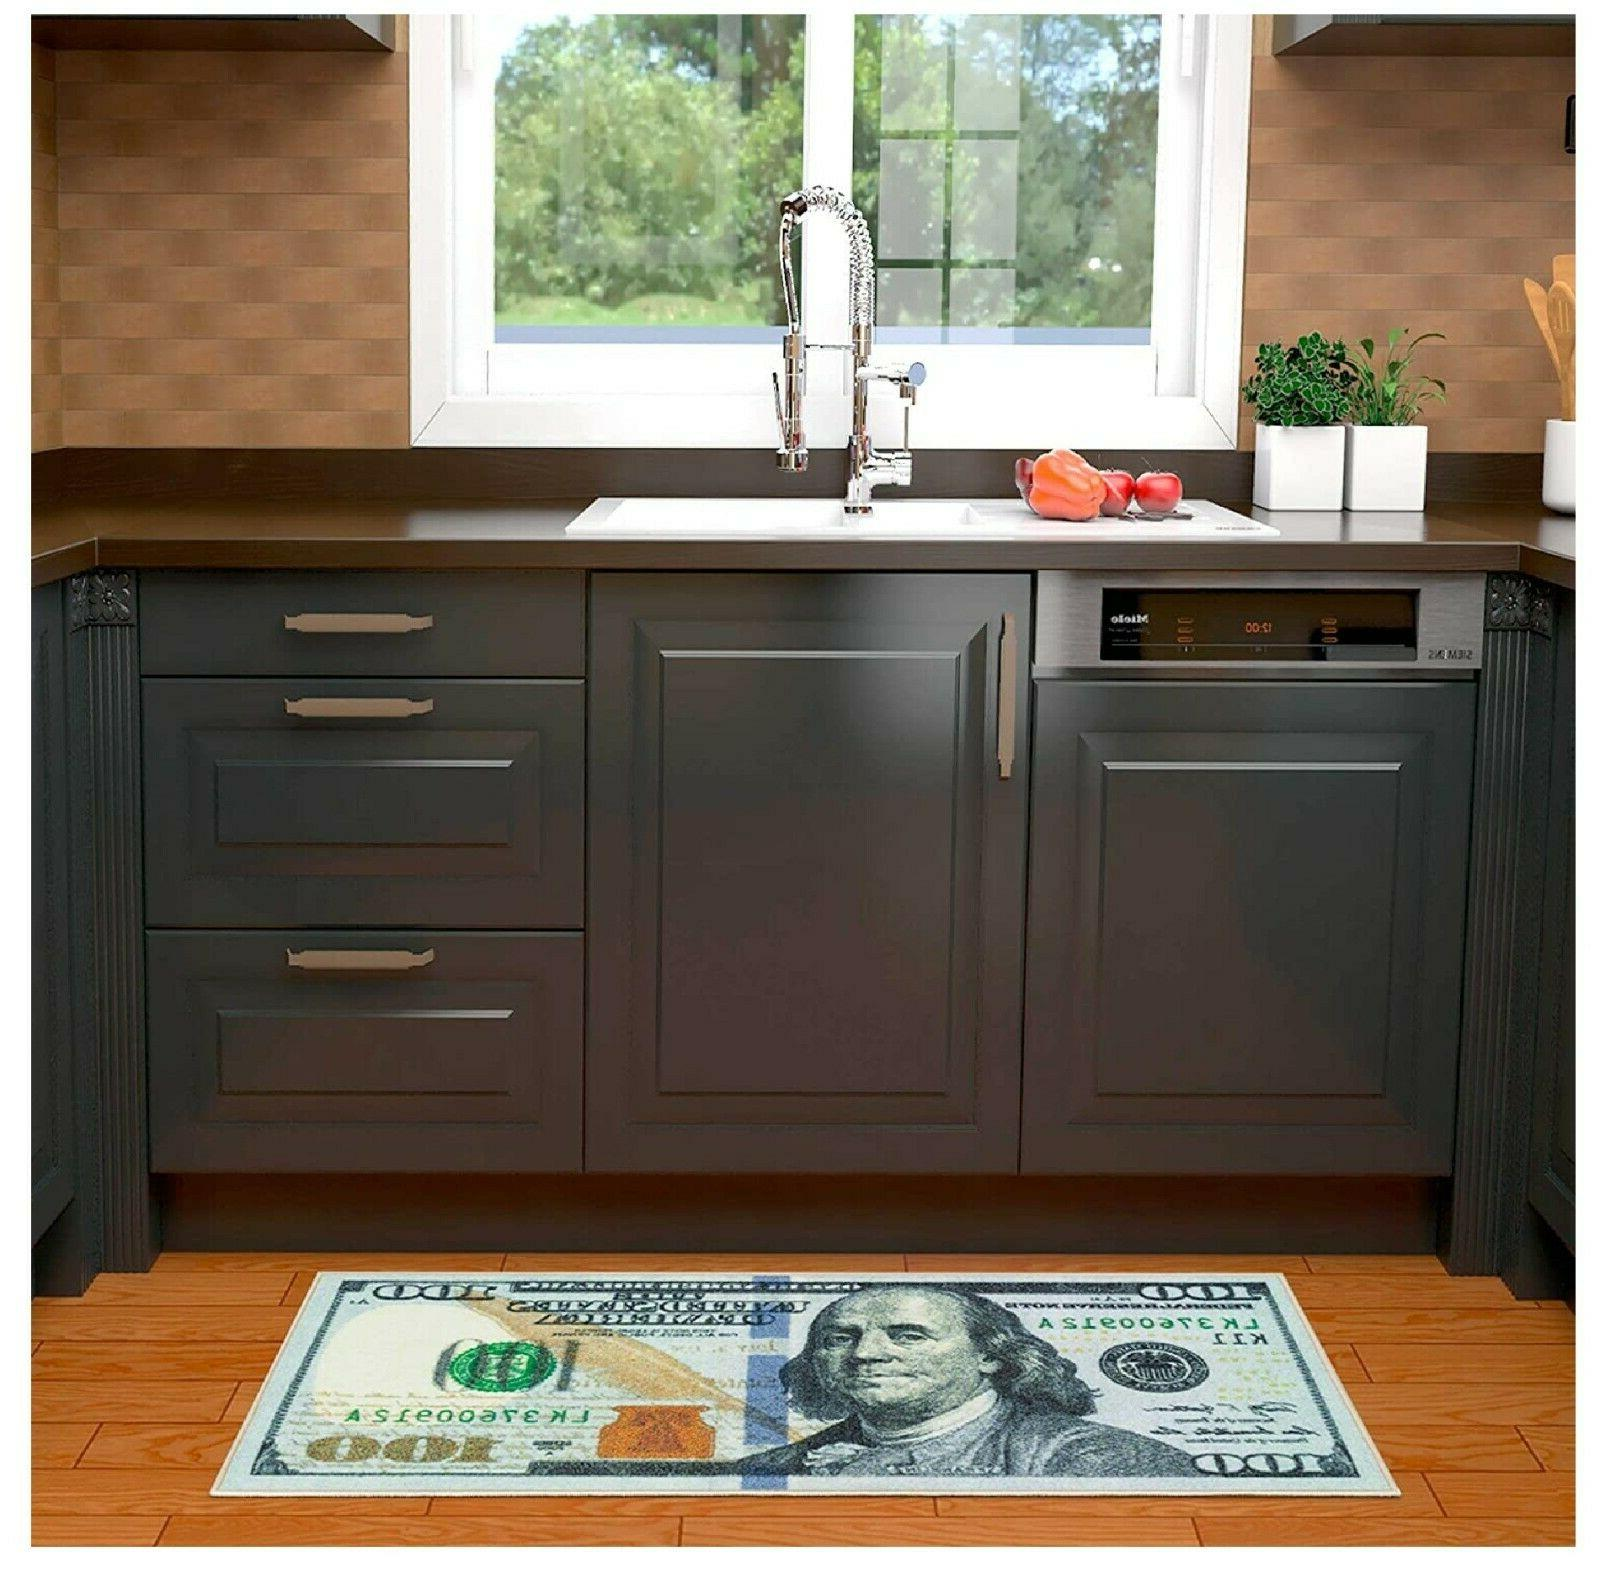 100 Dollar Bill Rug Nonslip Area Runner Kitchen Hallway Floor New